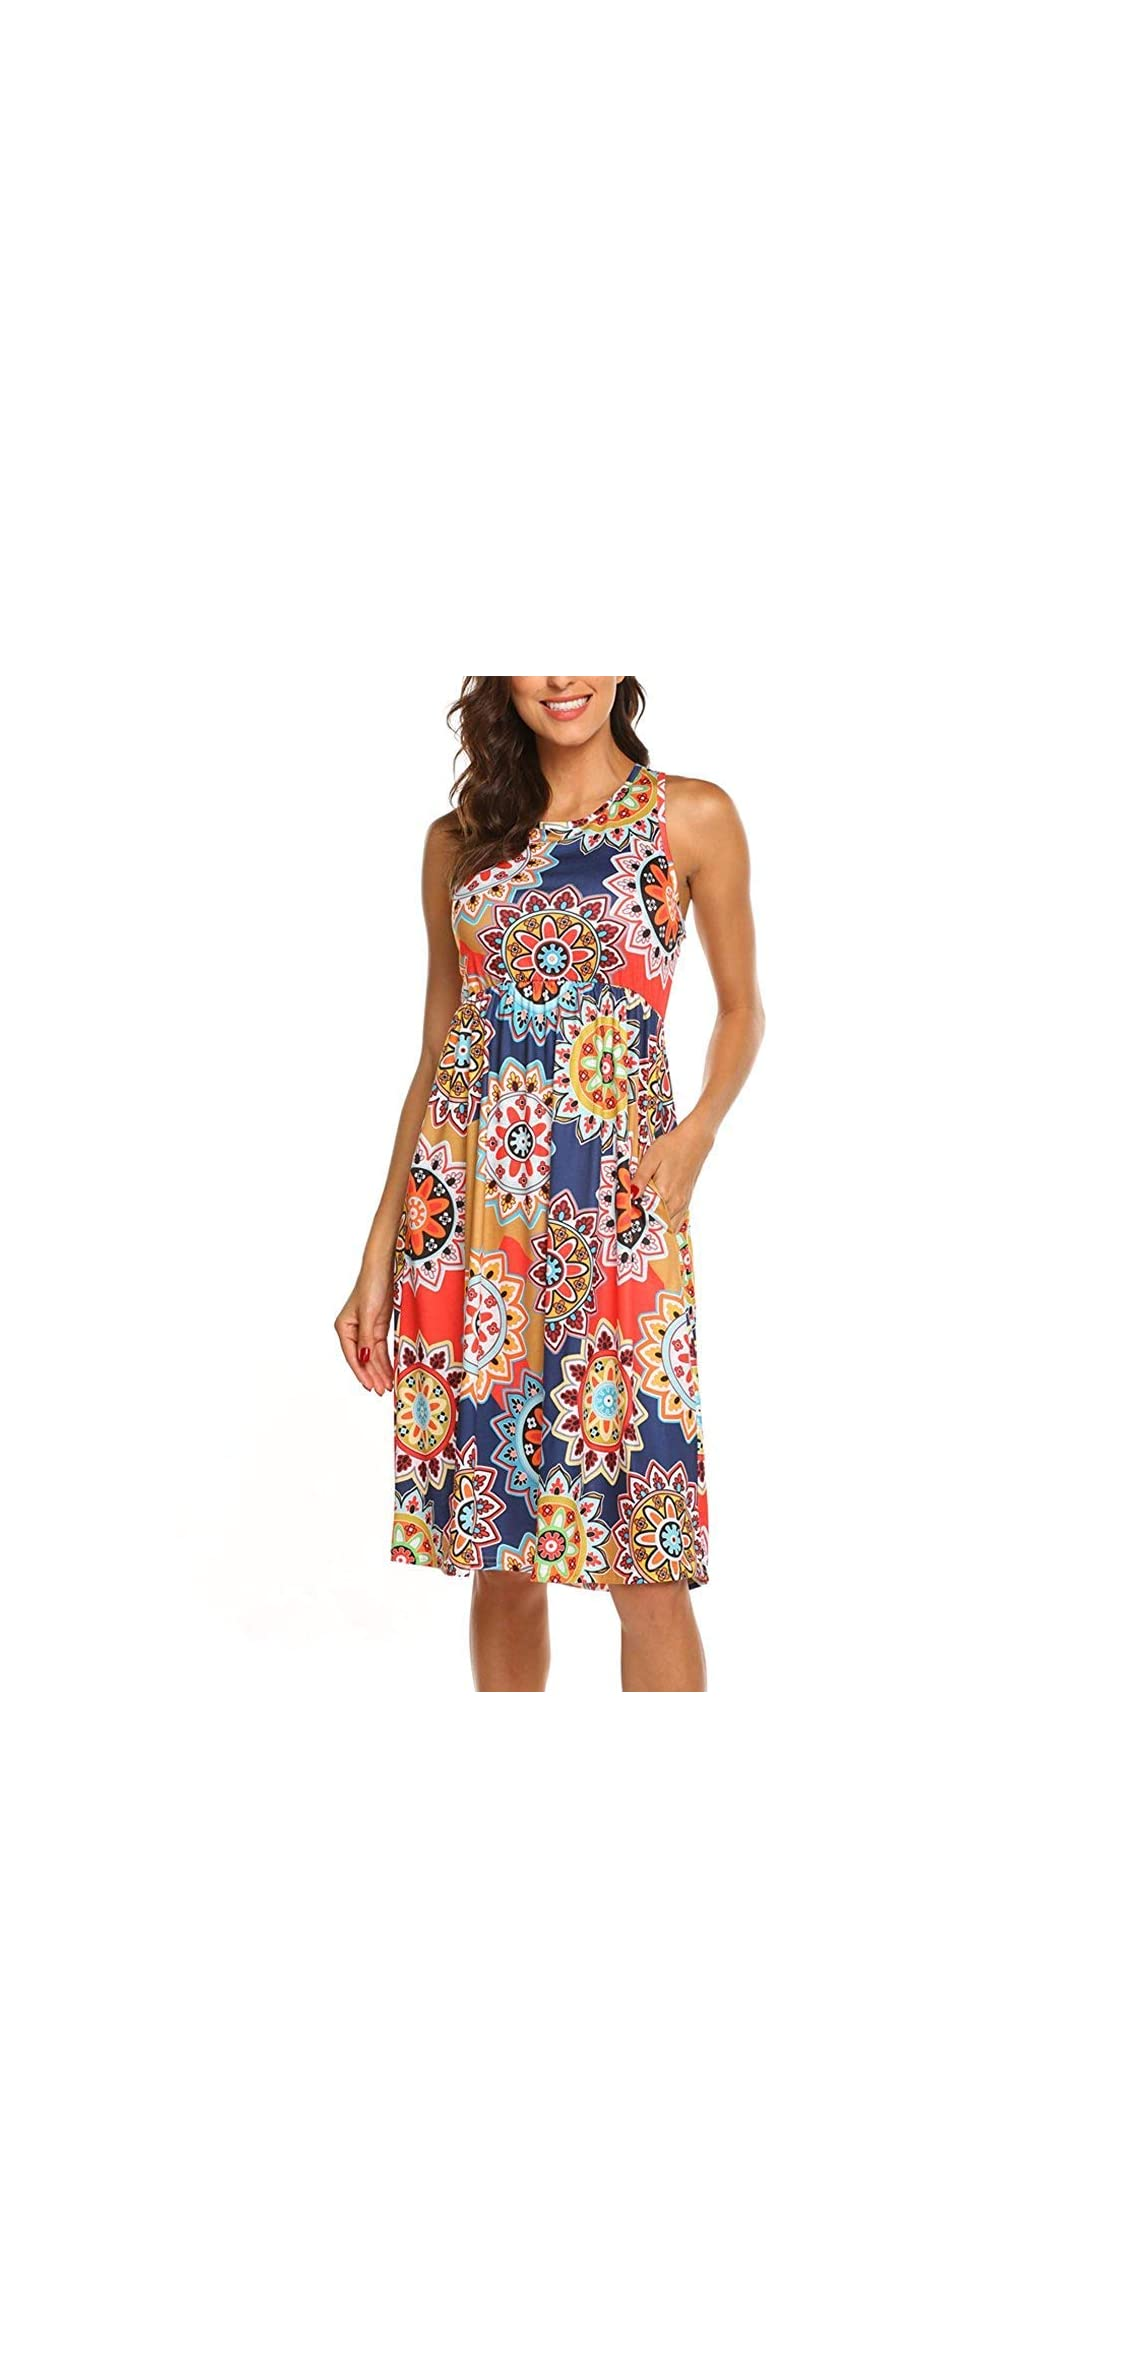 Womens Summer Sleeveless Floral Print Racerback Midi With